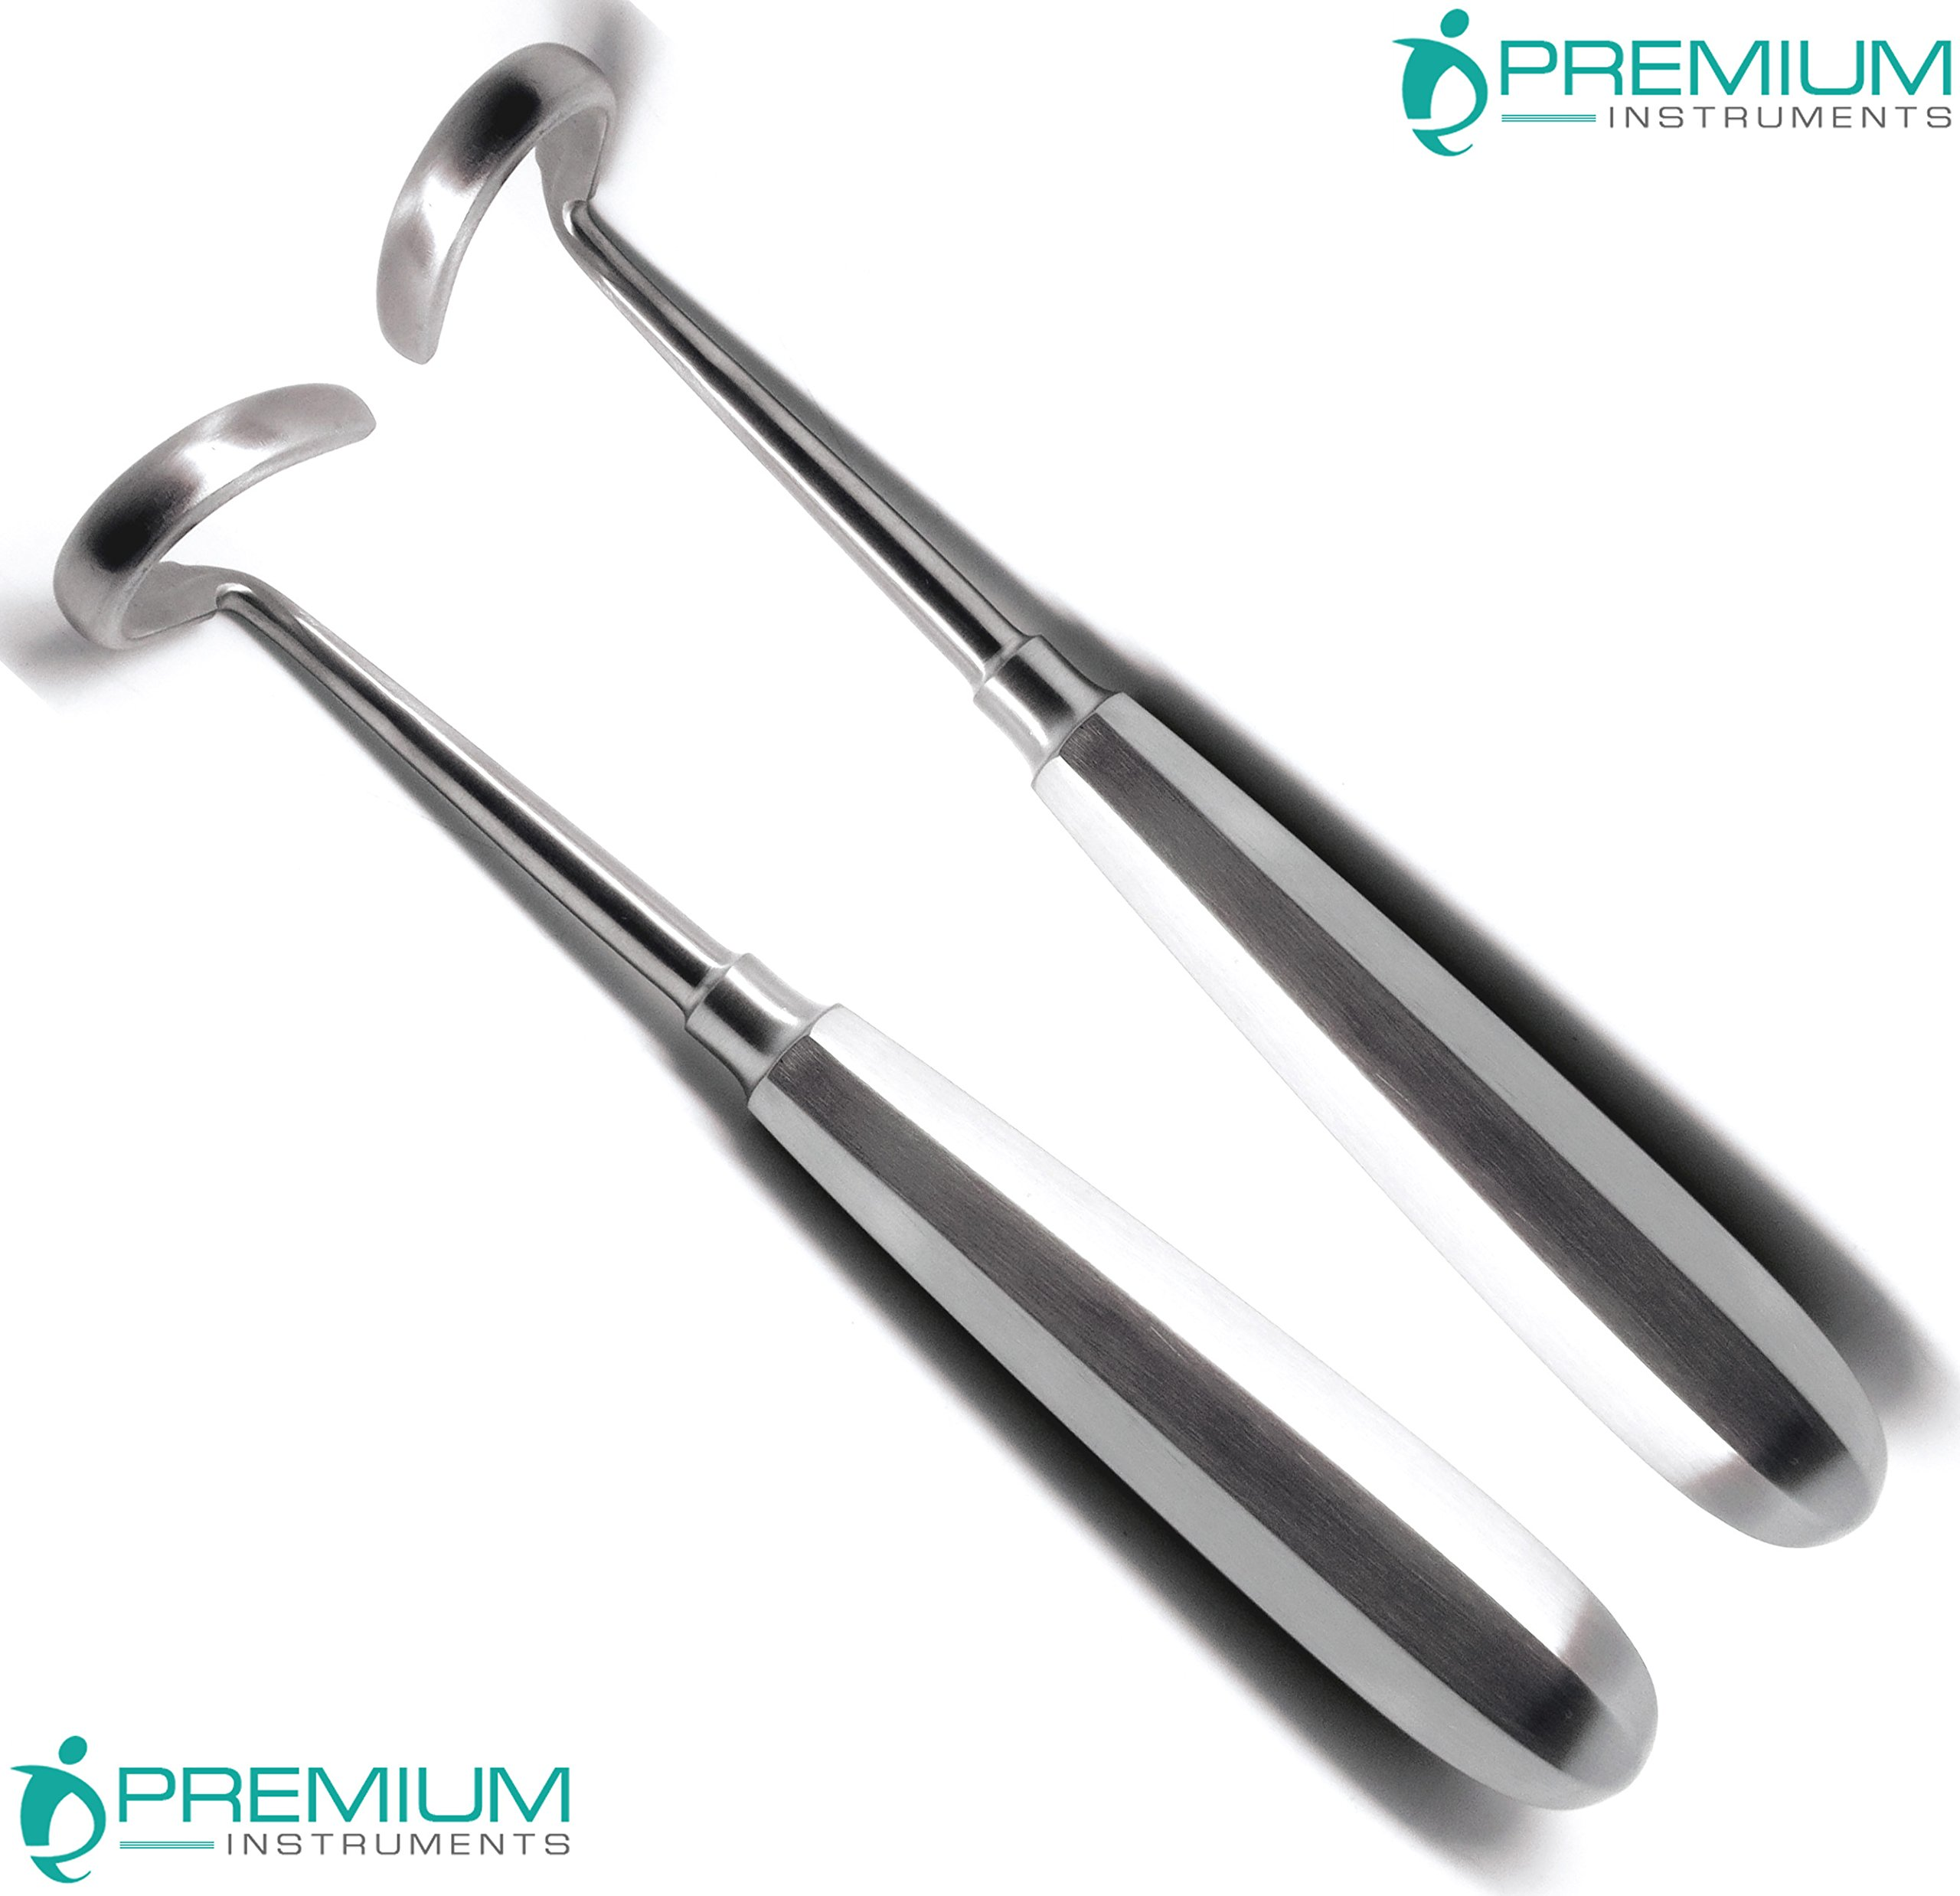 2 Pcs Doyen Rib Elevators Right & Left 7'' Surgical Curved Blade 3.2cm Instruments